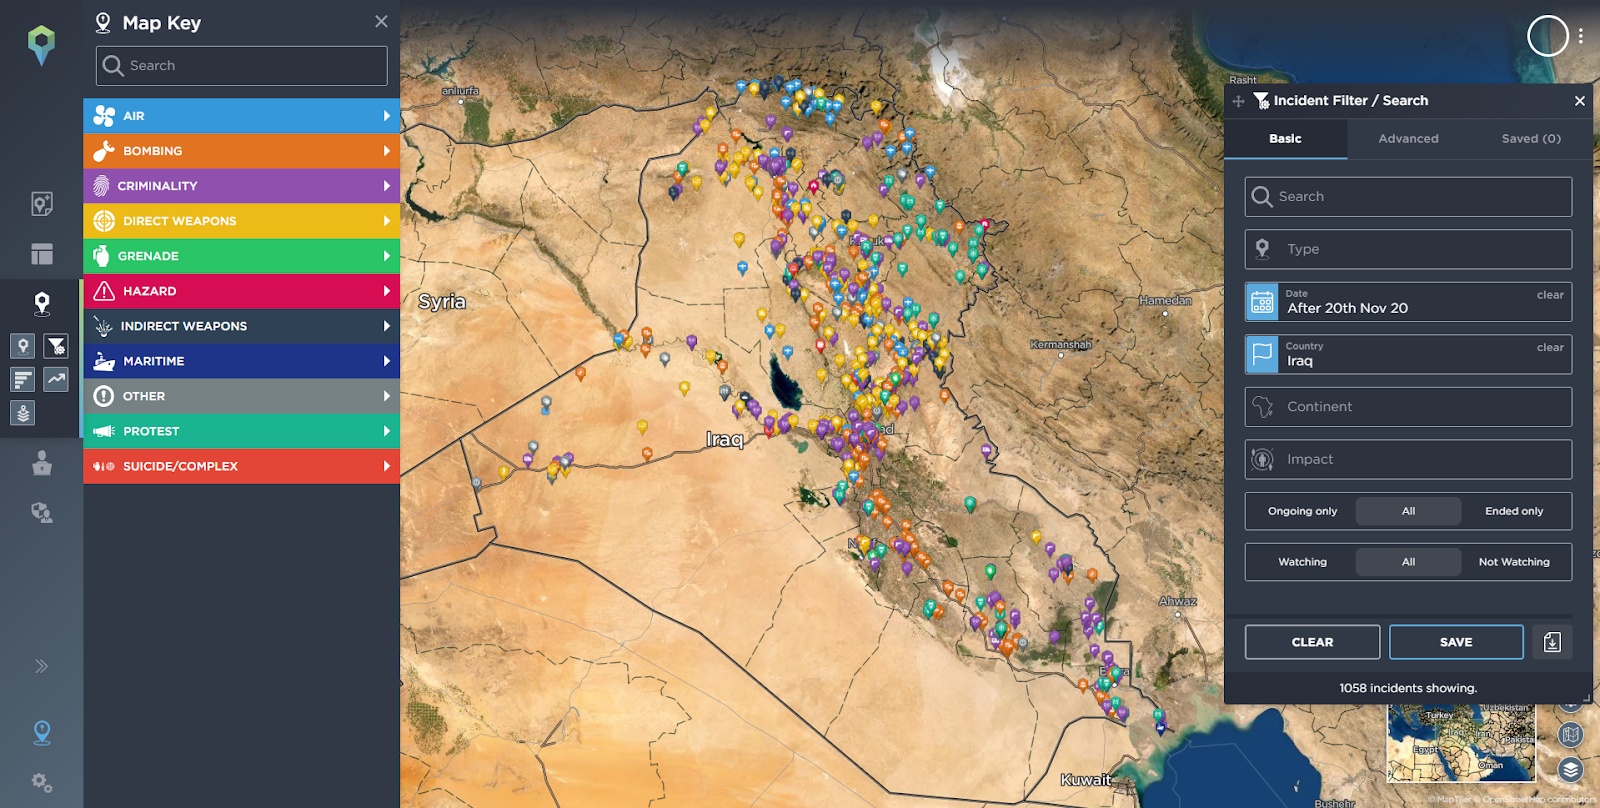 setting up a mining operation - Incidents reported in Iraq in the last 6 months.